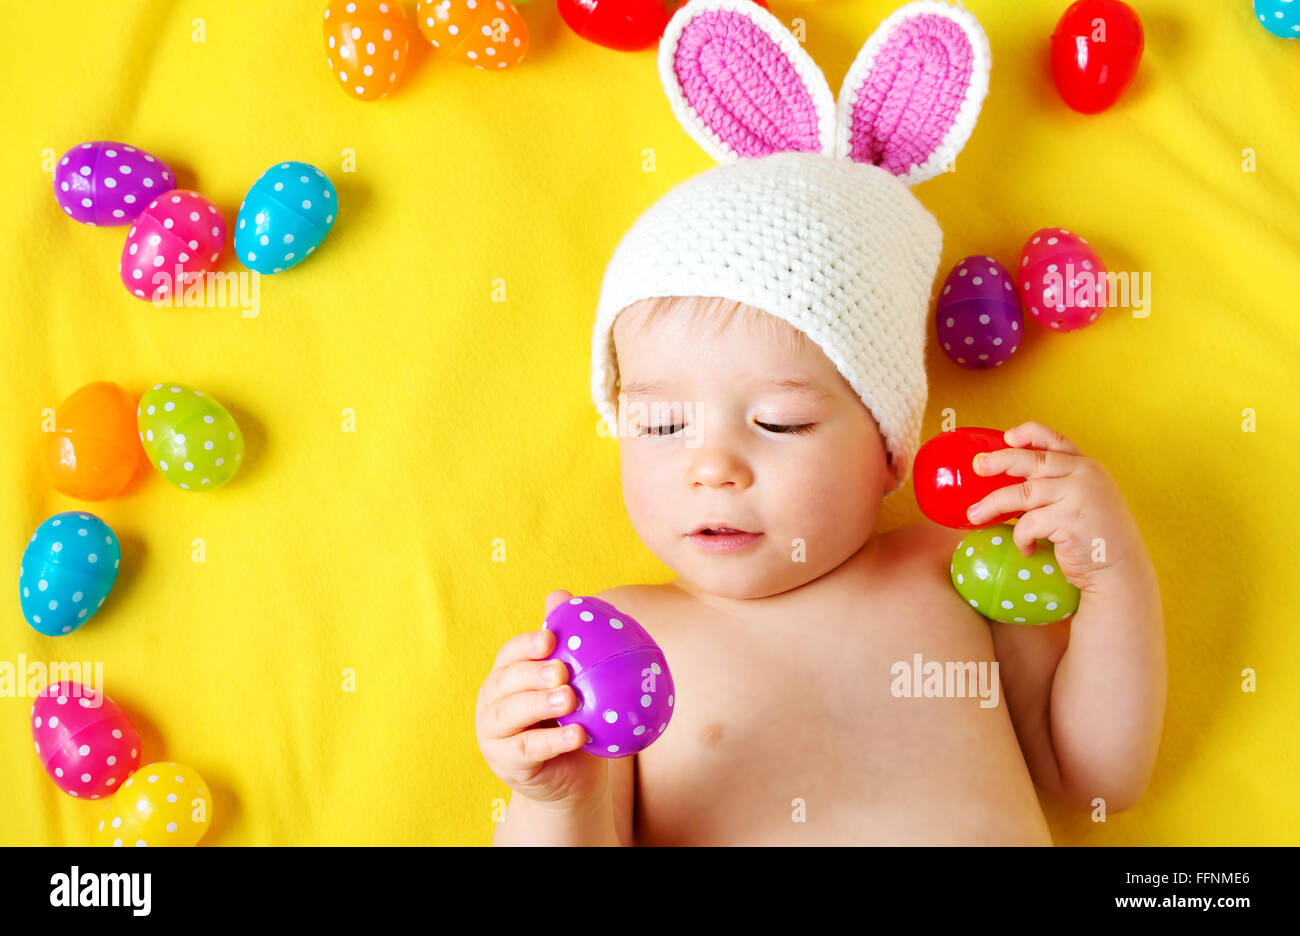 Baby Boy in bunny hat lying on couverture jaune avec des oeufs de pâques Photo Stock